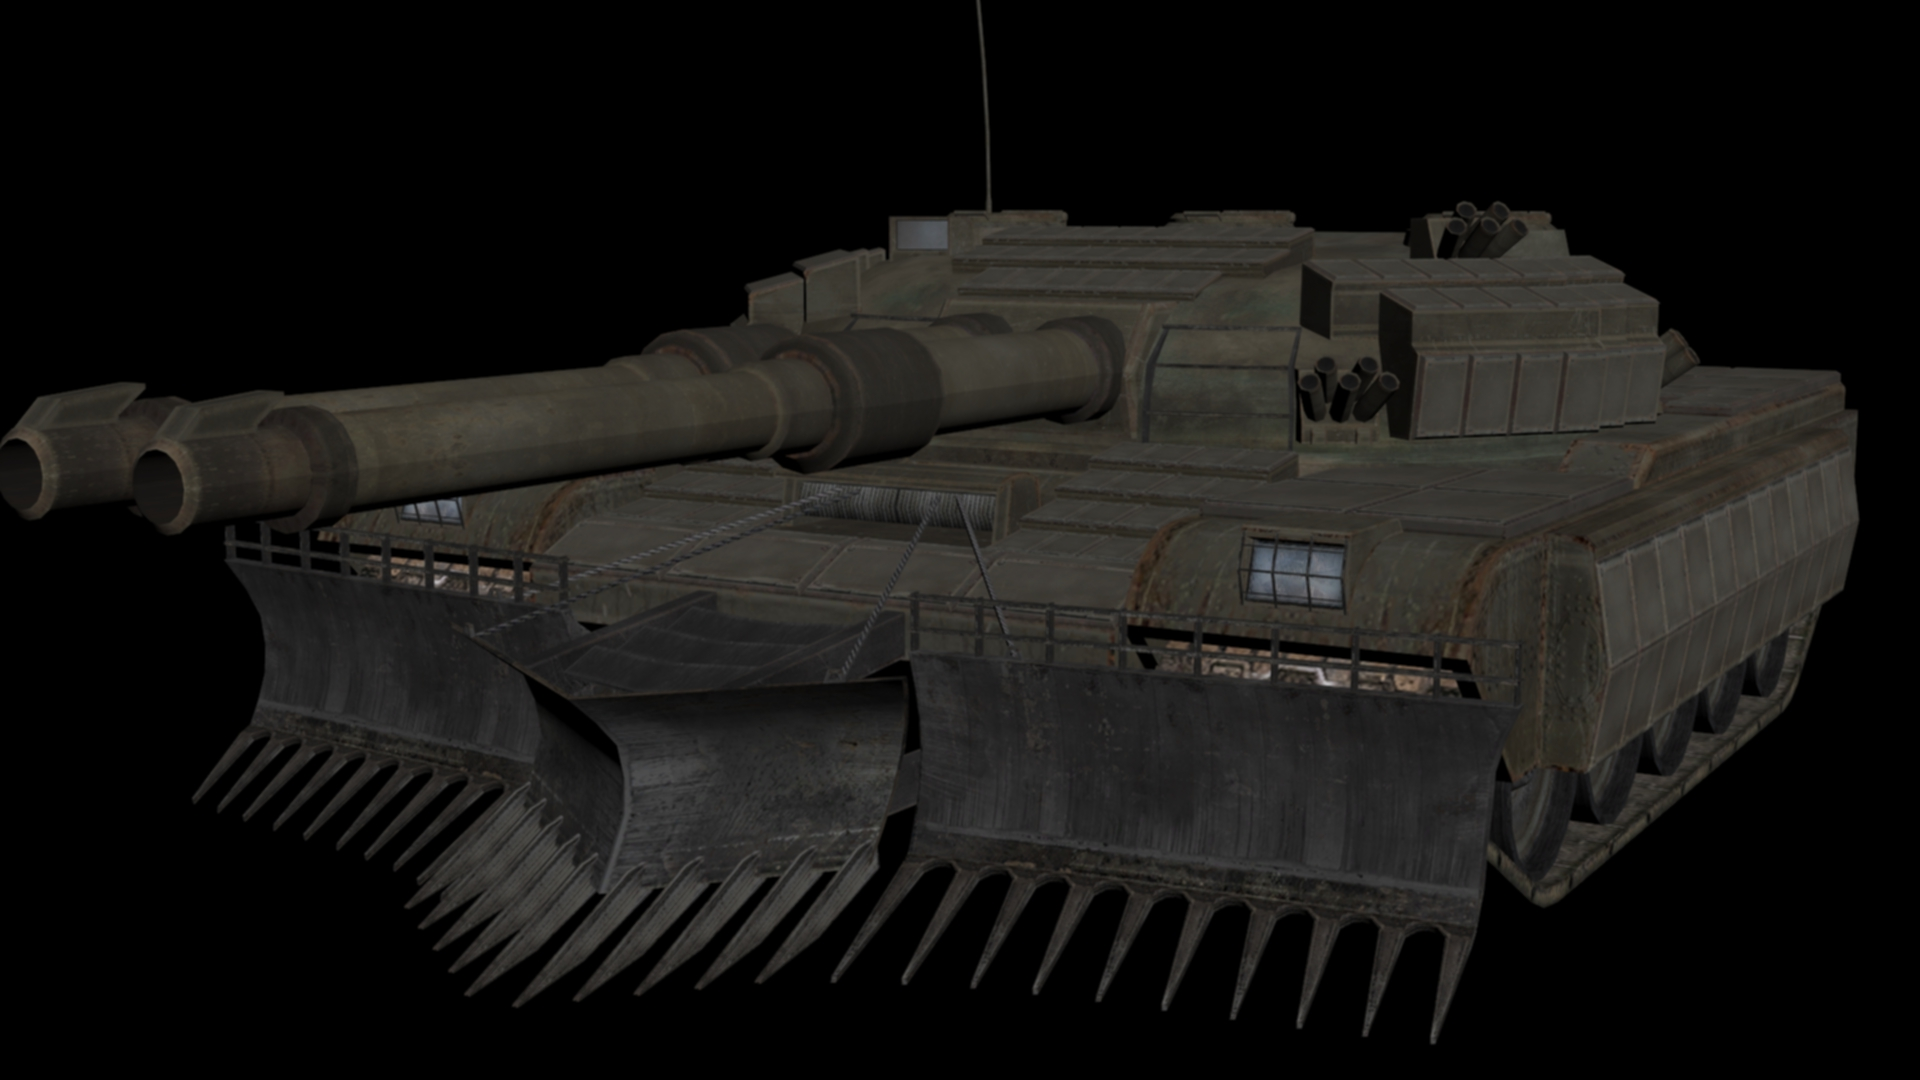 http://images3.wikia.nocookie.net/__cb20130207115638/callofduty/ru/images/6/66/Unknown_Tank_BOII_Model.jpg